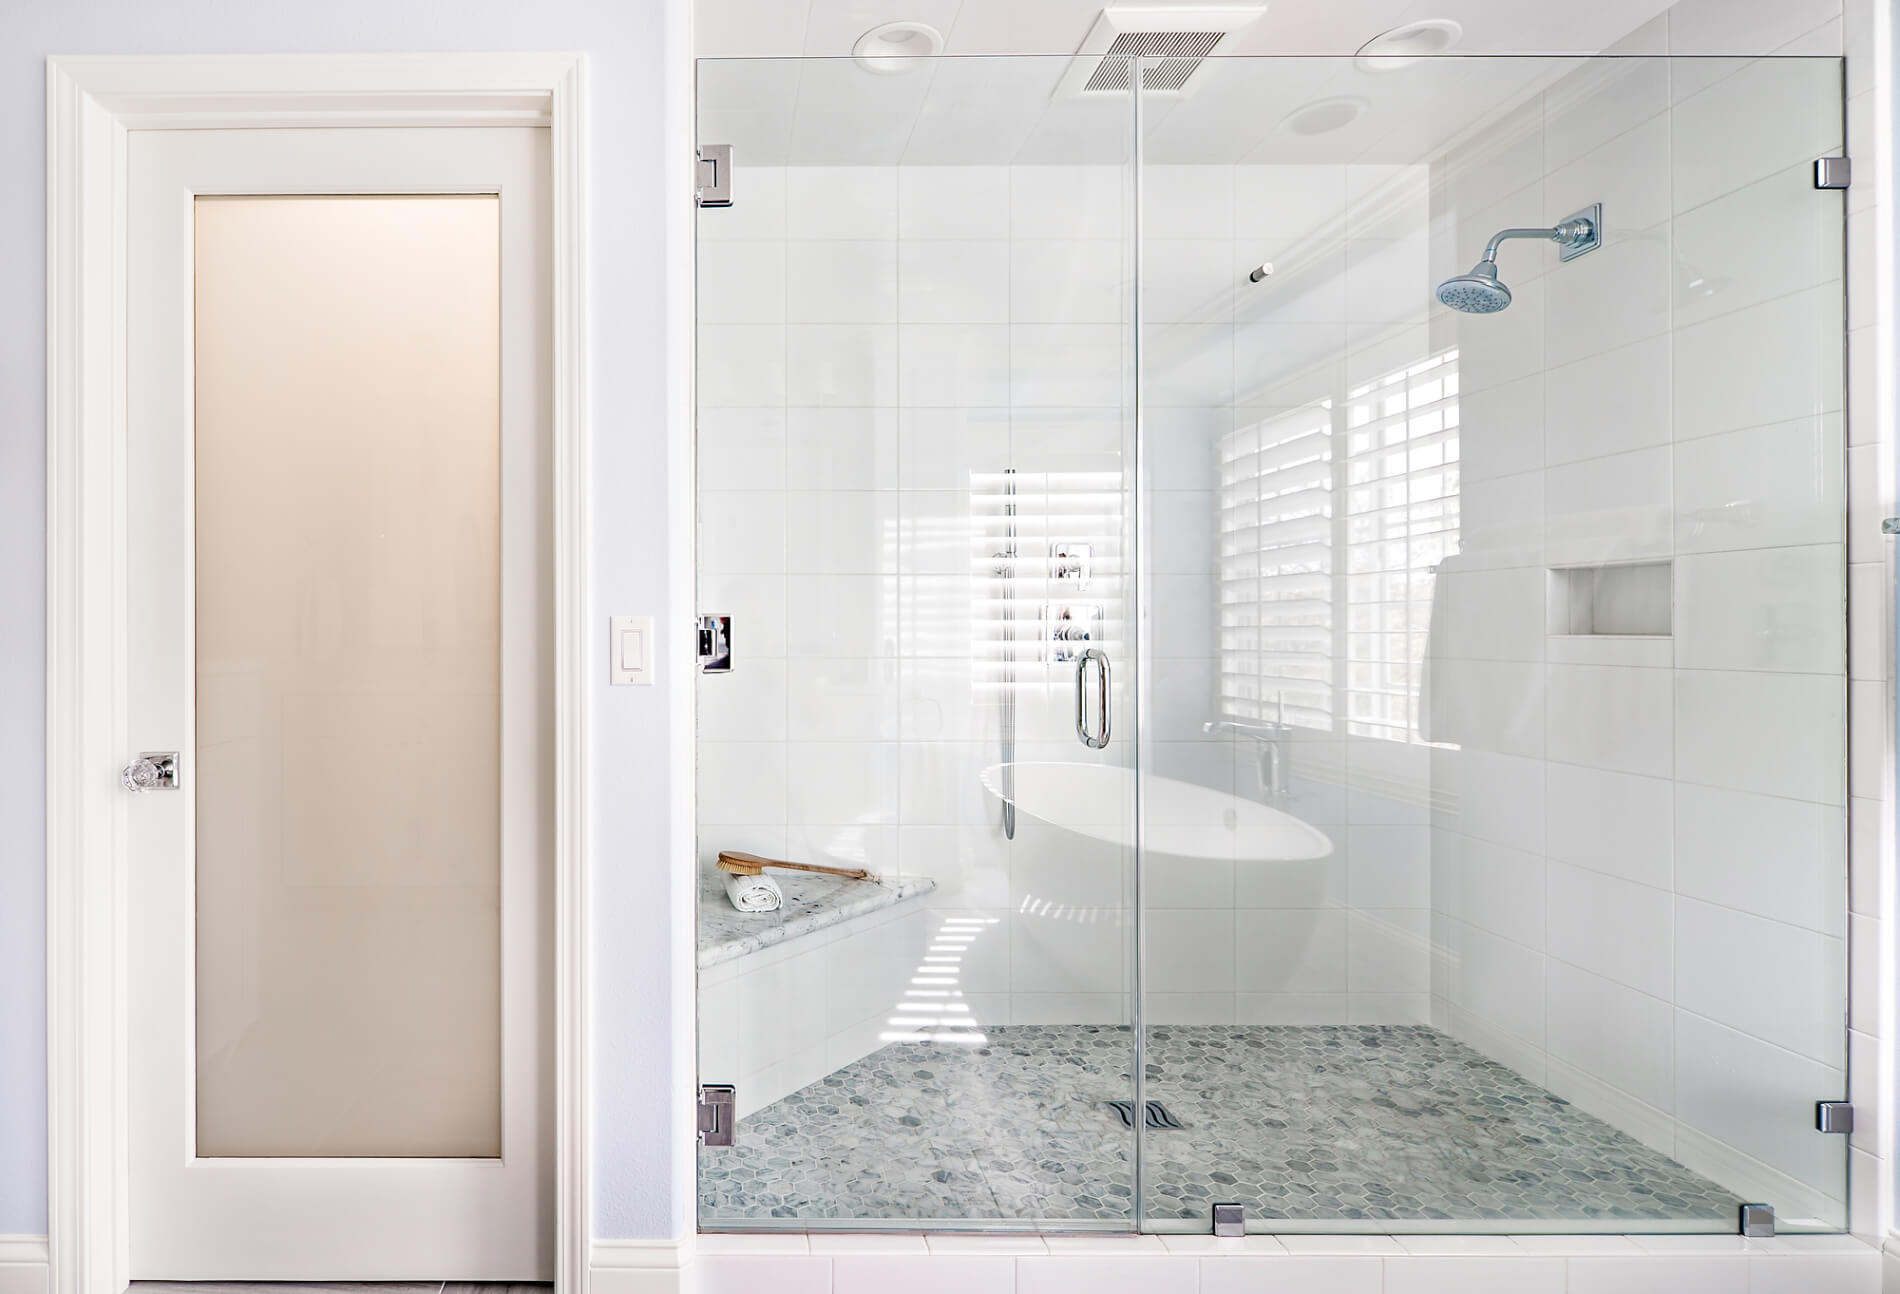 Luxury Shower Remodeling, Glass Shower Doors Remodeling, Remodeling a Bathroom